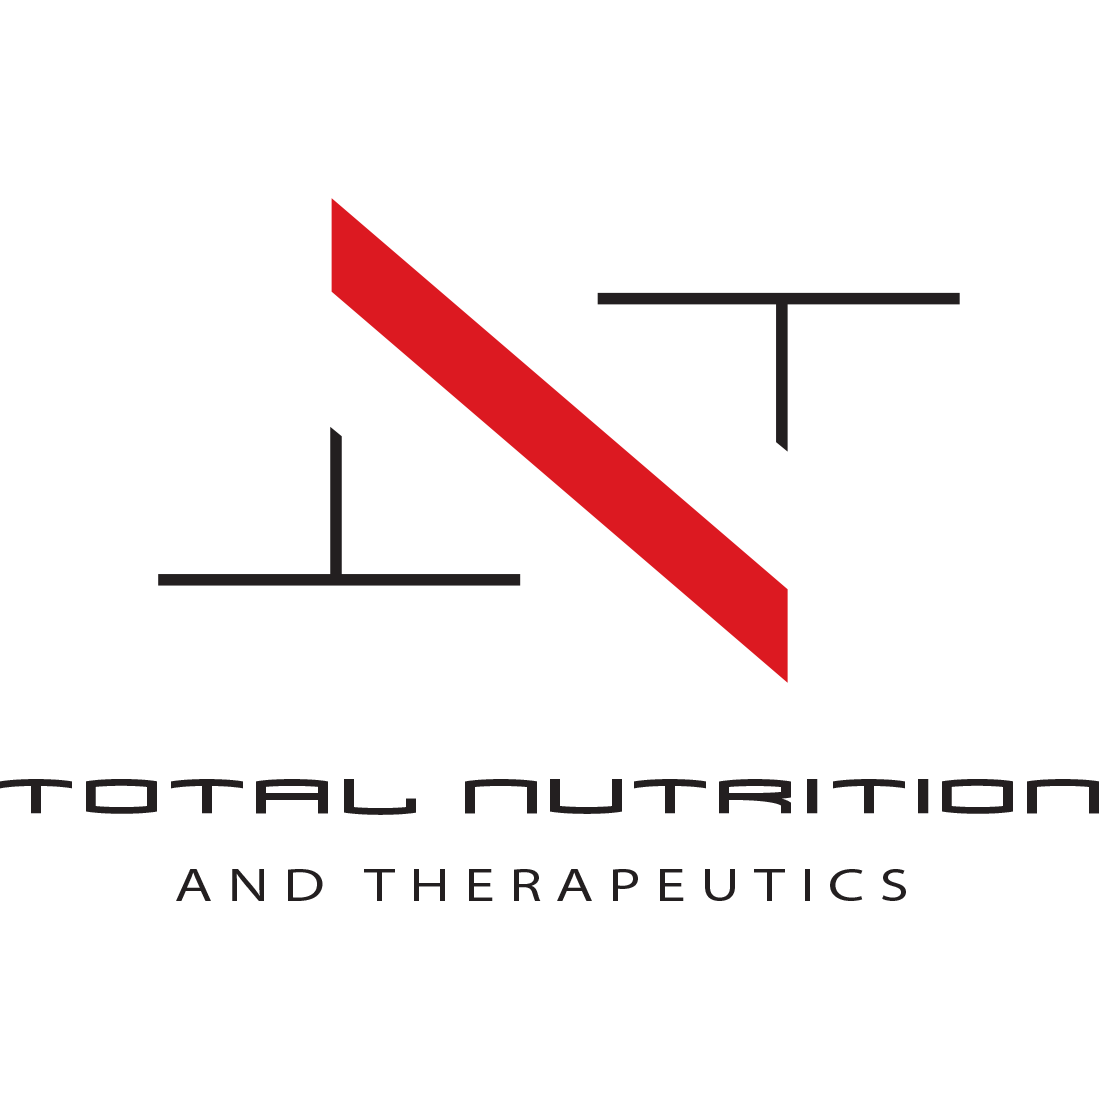 Total Nutrition and Therapeutics